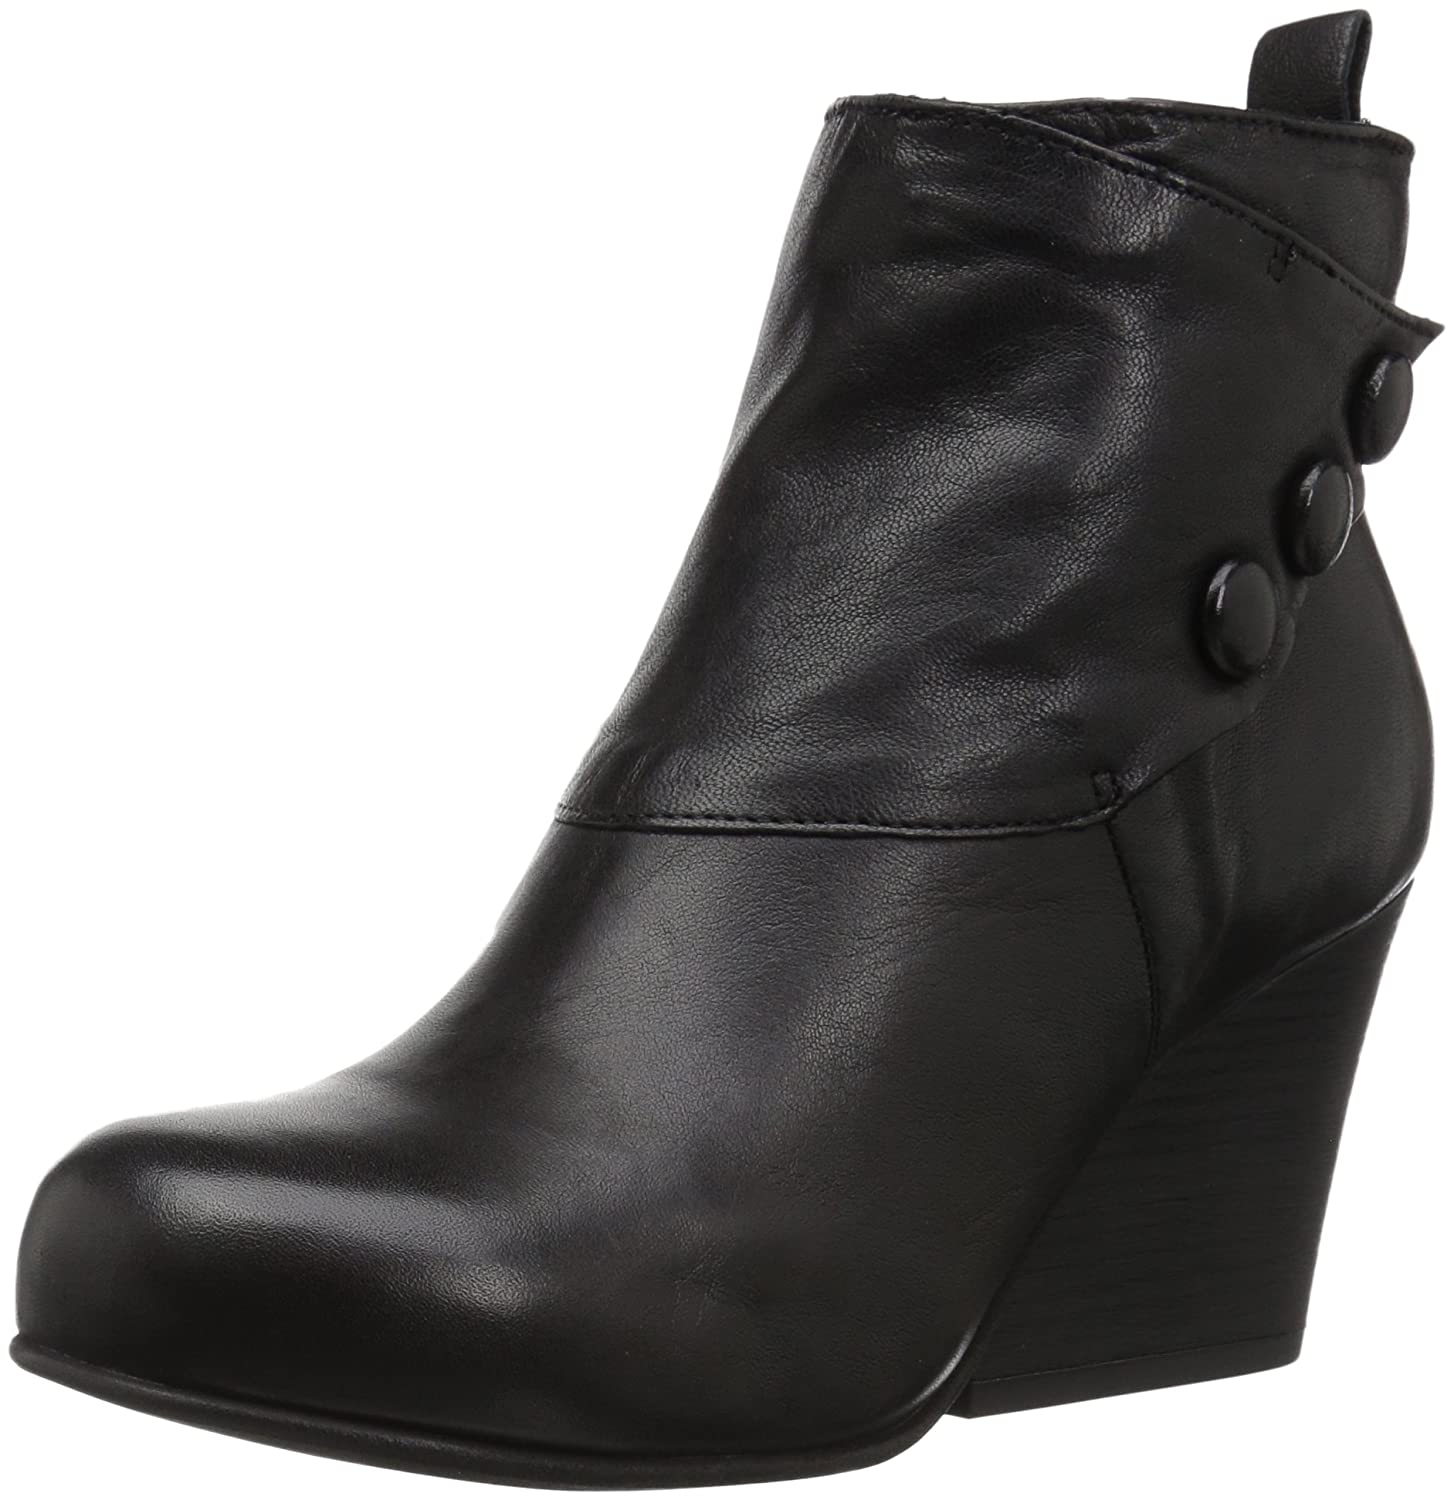 Miz Mooz Women's Keegan Ankle Boot B06XP51QG3 9 B(M) US|Black